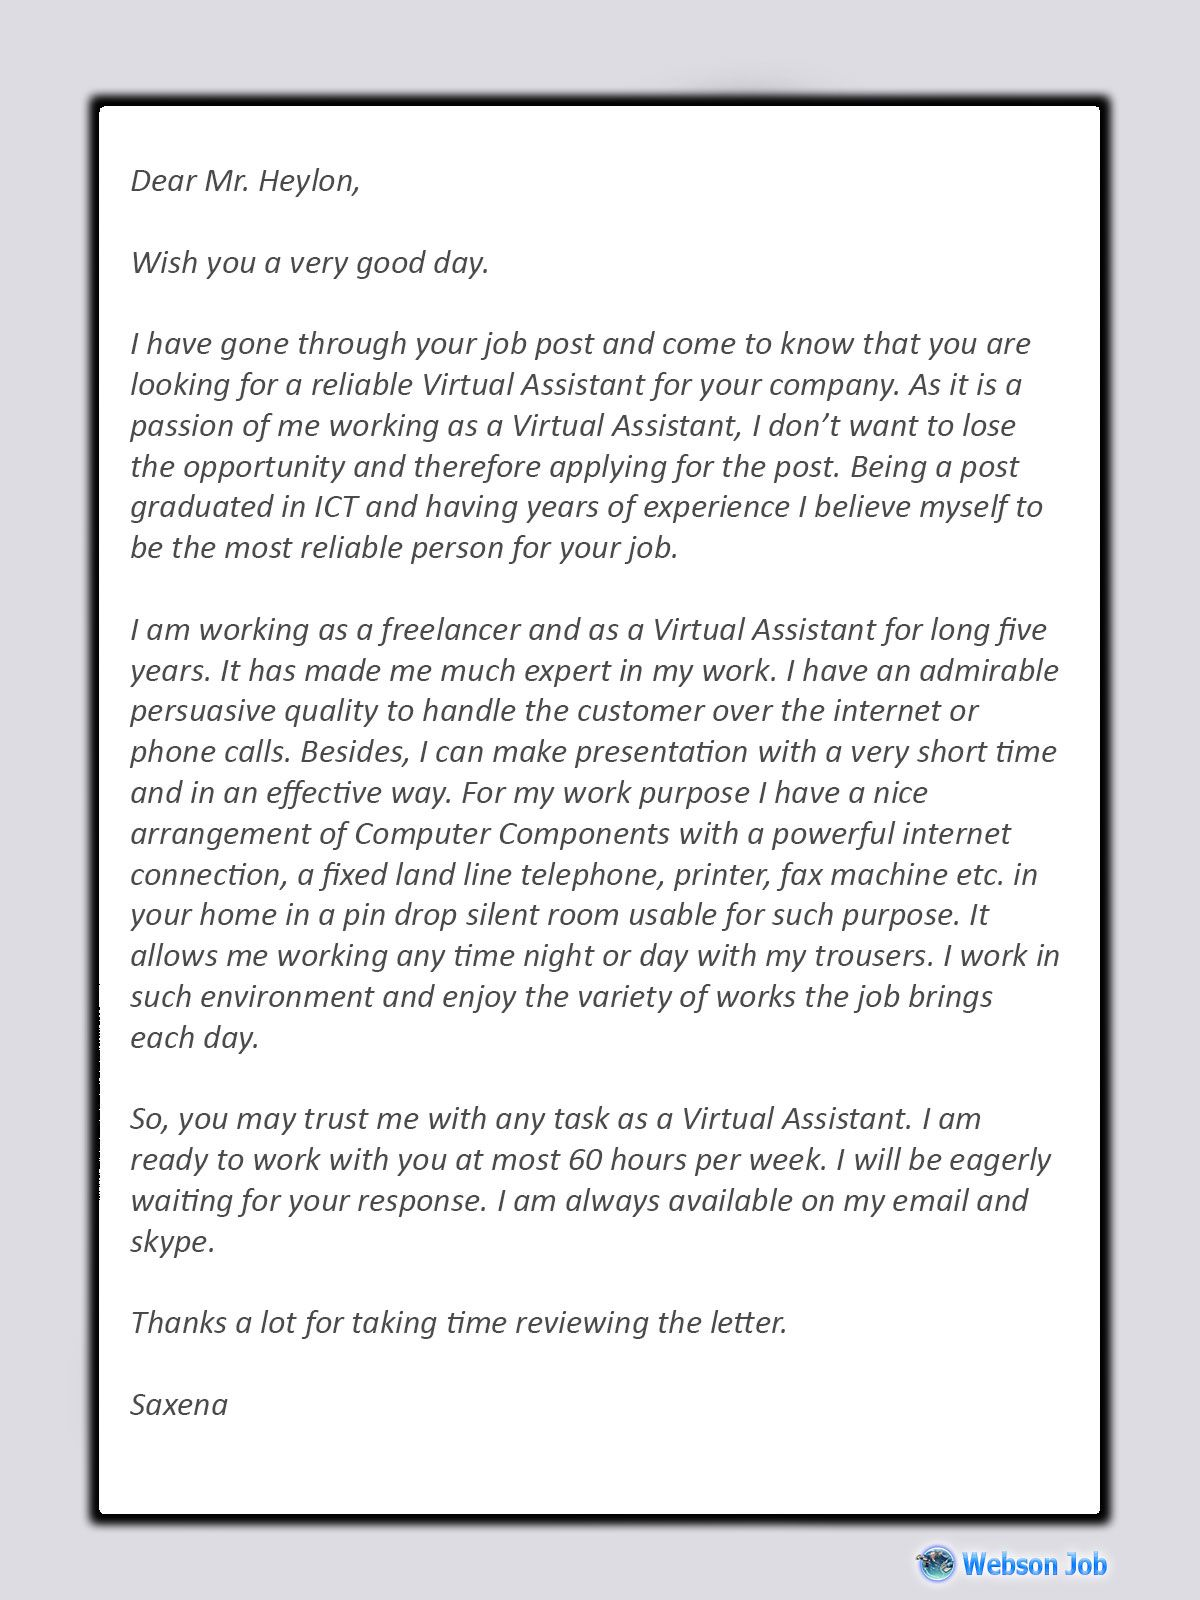 Virtual Assistant Cover Letter Best Sample For Va Job Cover Letter Virtual Assistant Cover Letter Template